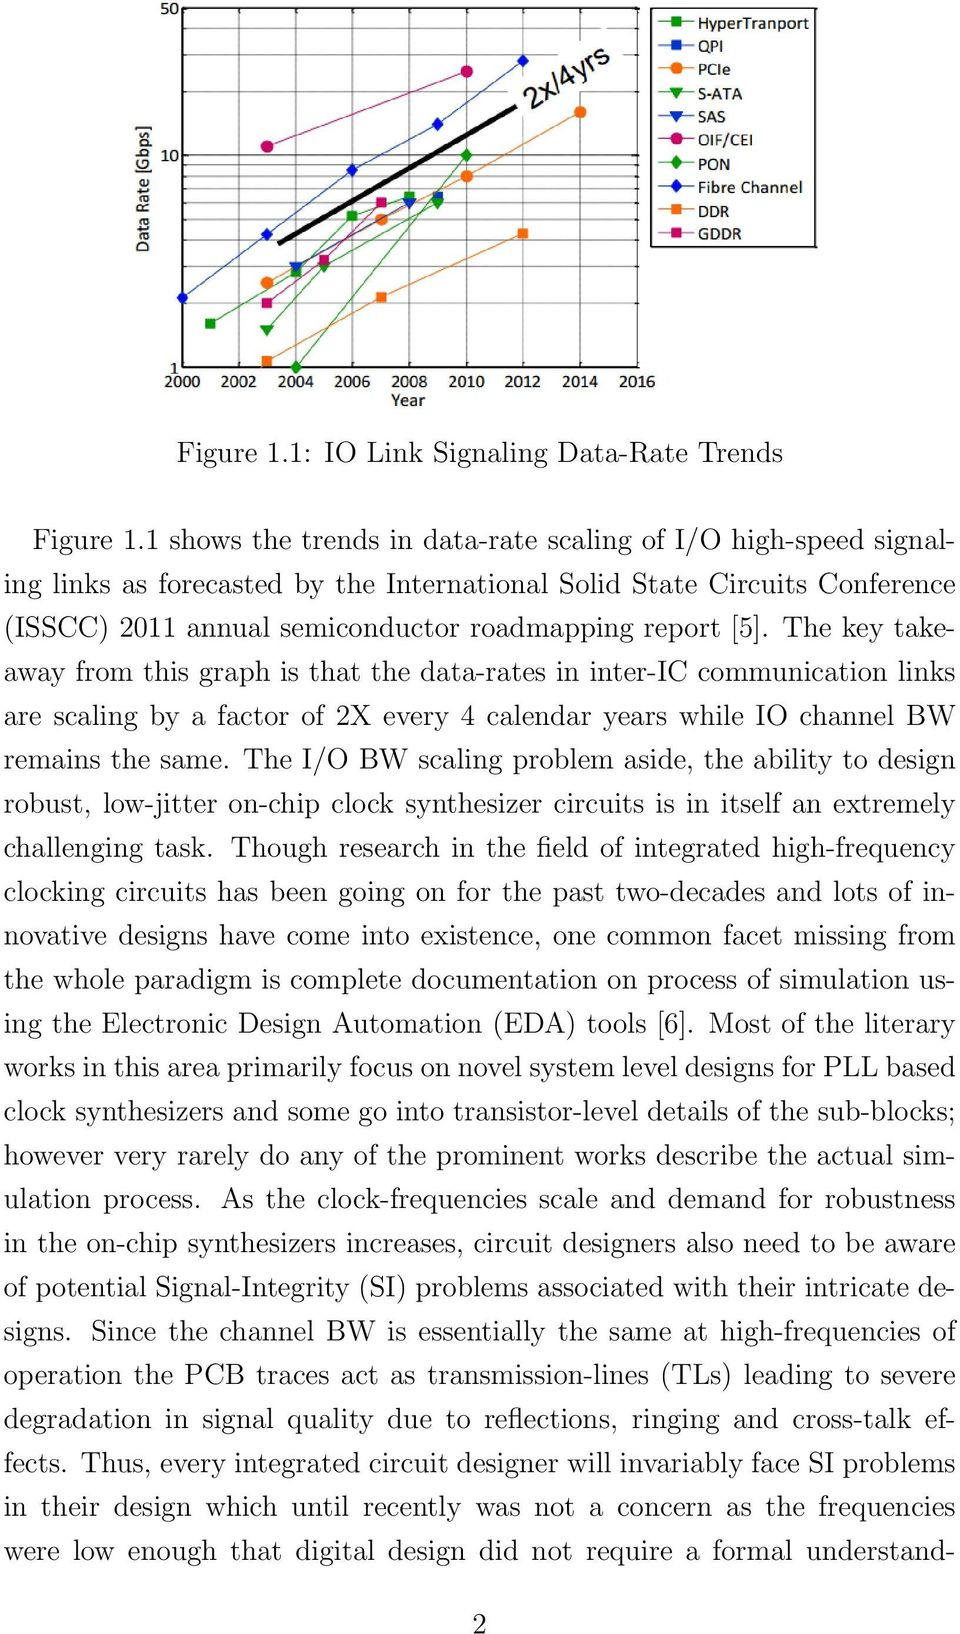 Design Of A Phase Locked Loop Based Clocking Circuit For High Speed Circuits Gt Simulation Understanding Voltage Generator The Key Takeaway From This Graph Is That Data Rates In Inter Ic